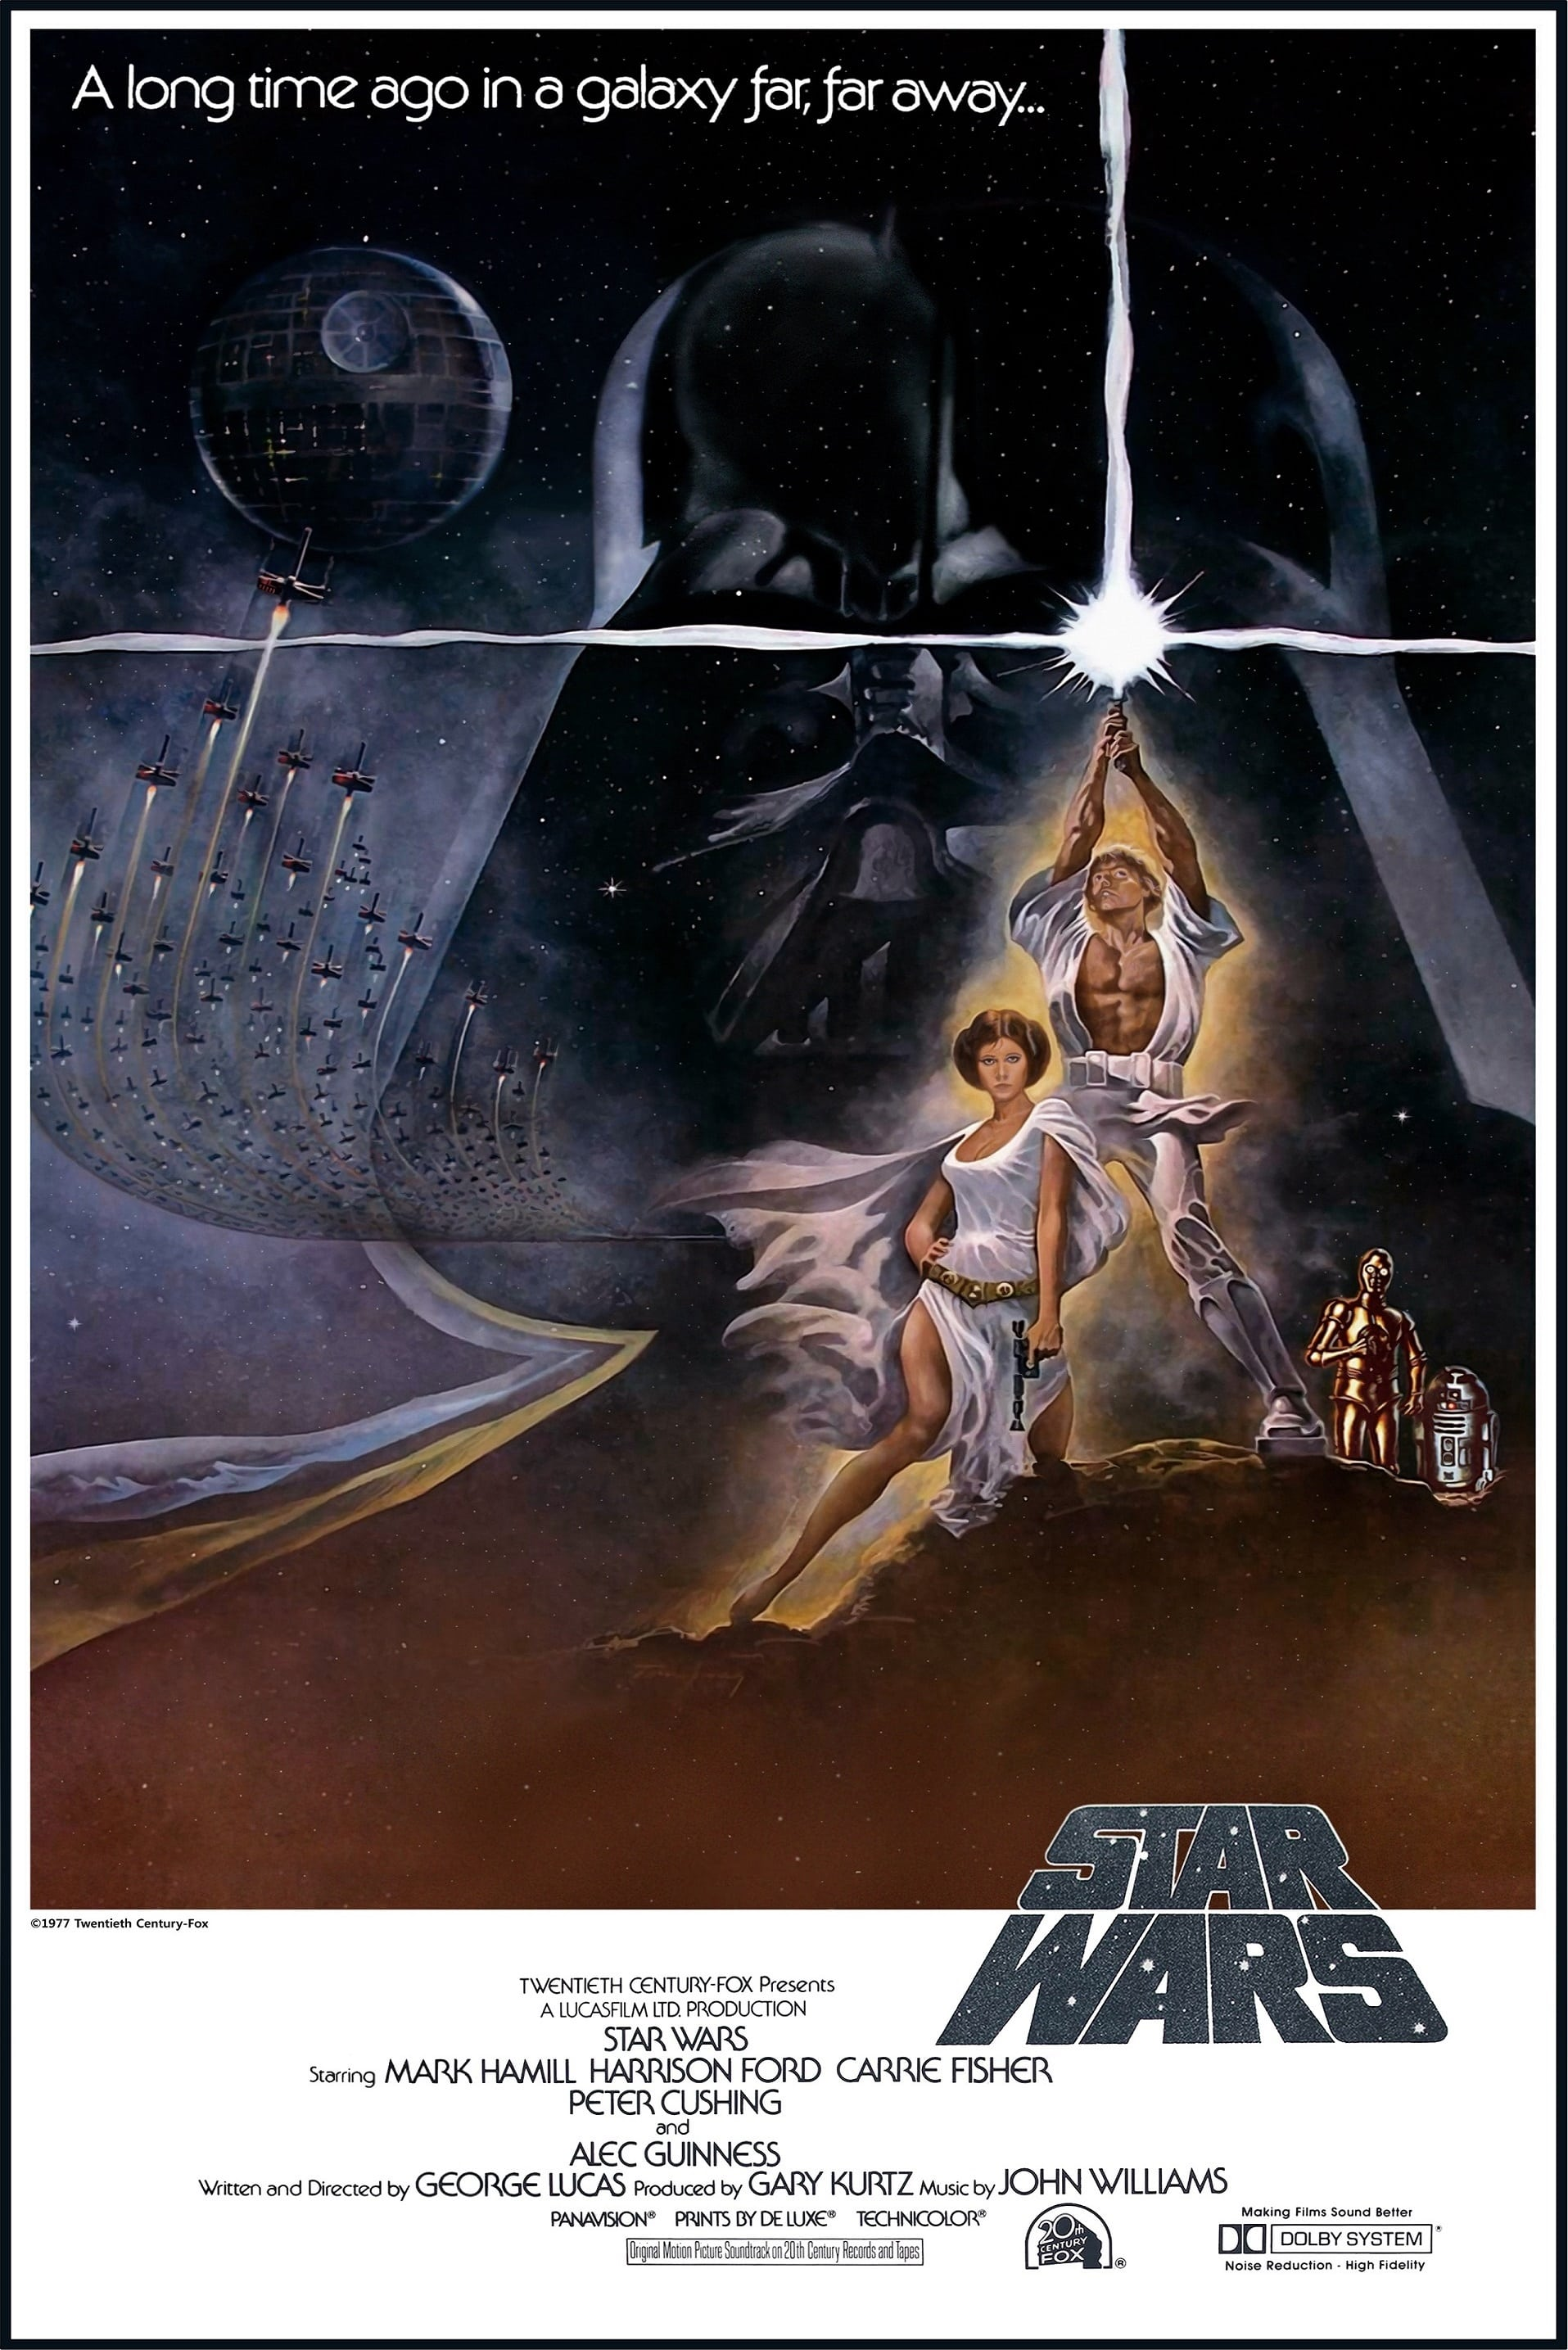 Star Wars - A New Hope (1977)